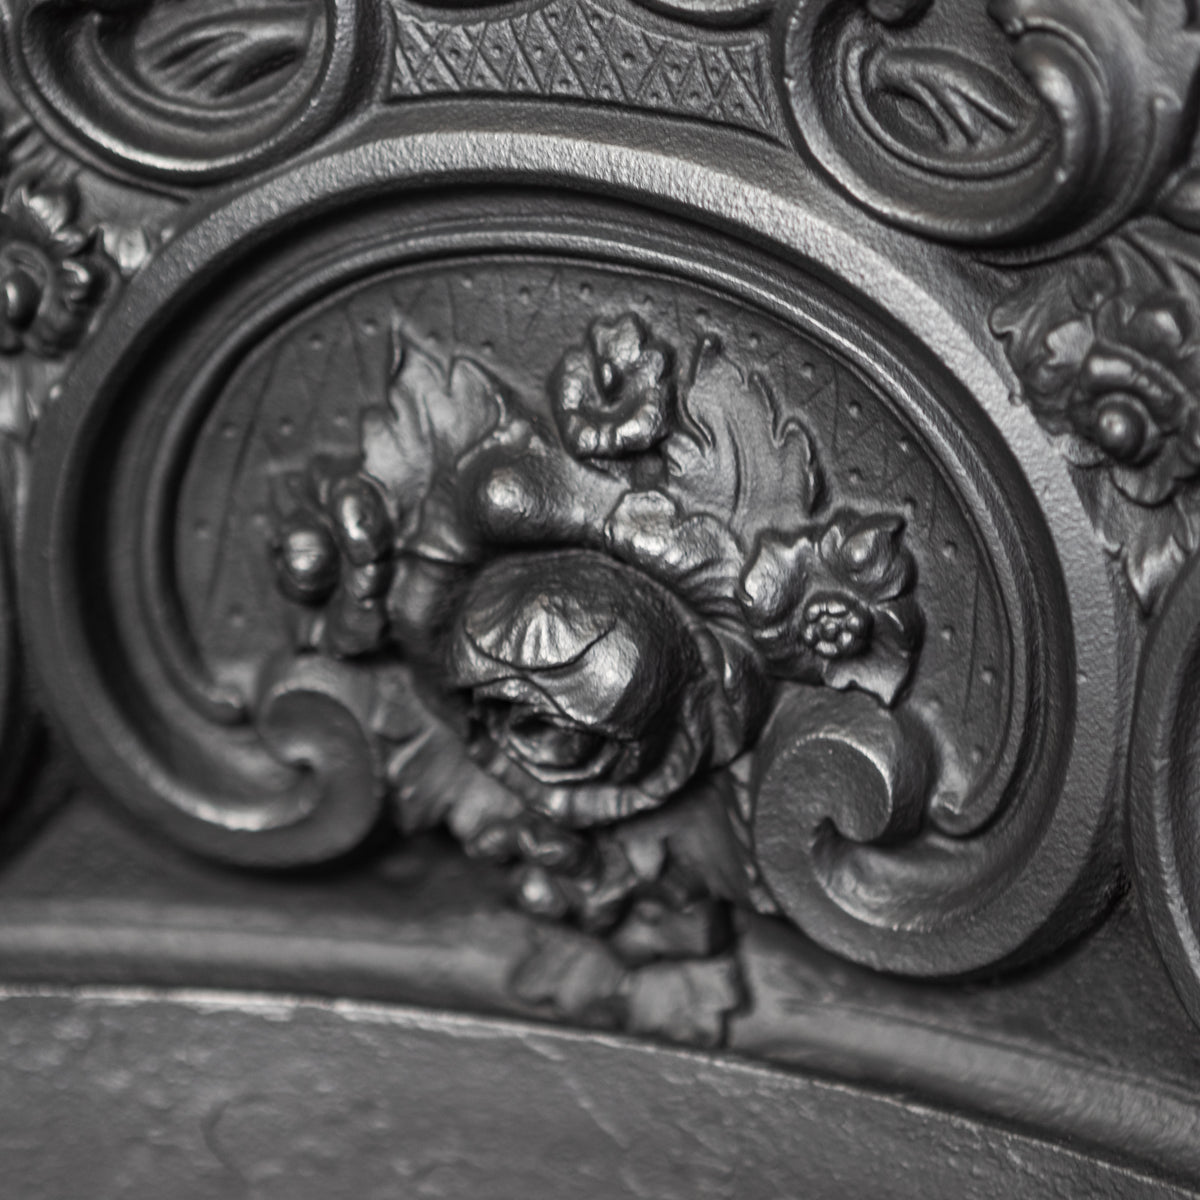 Rare Antique Ornate Victorian Fireplace Insert | The Architectural Forum